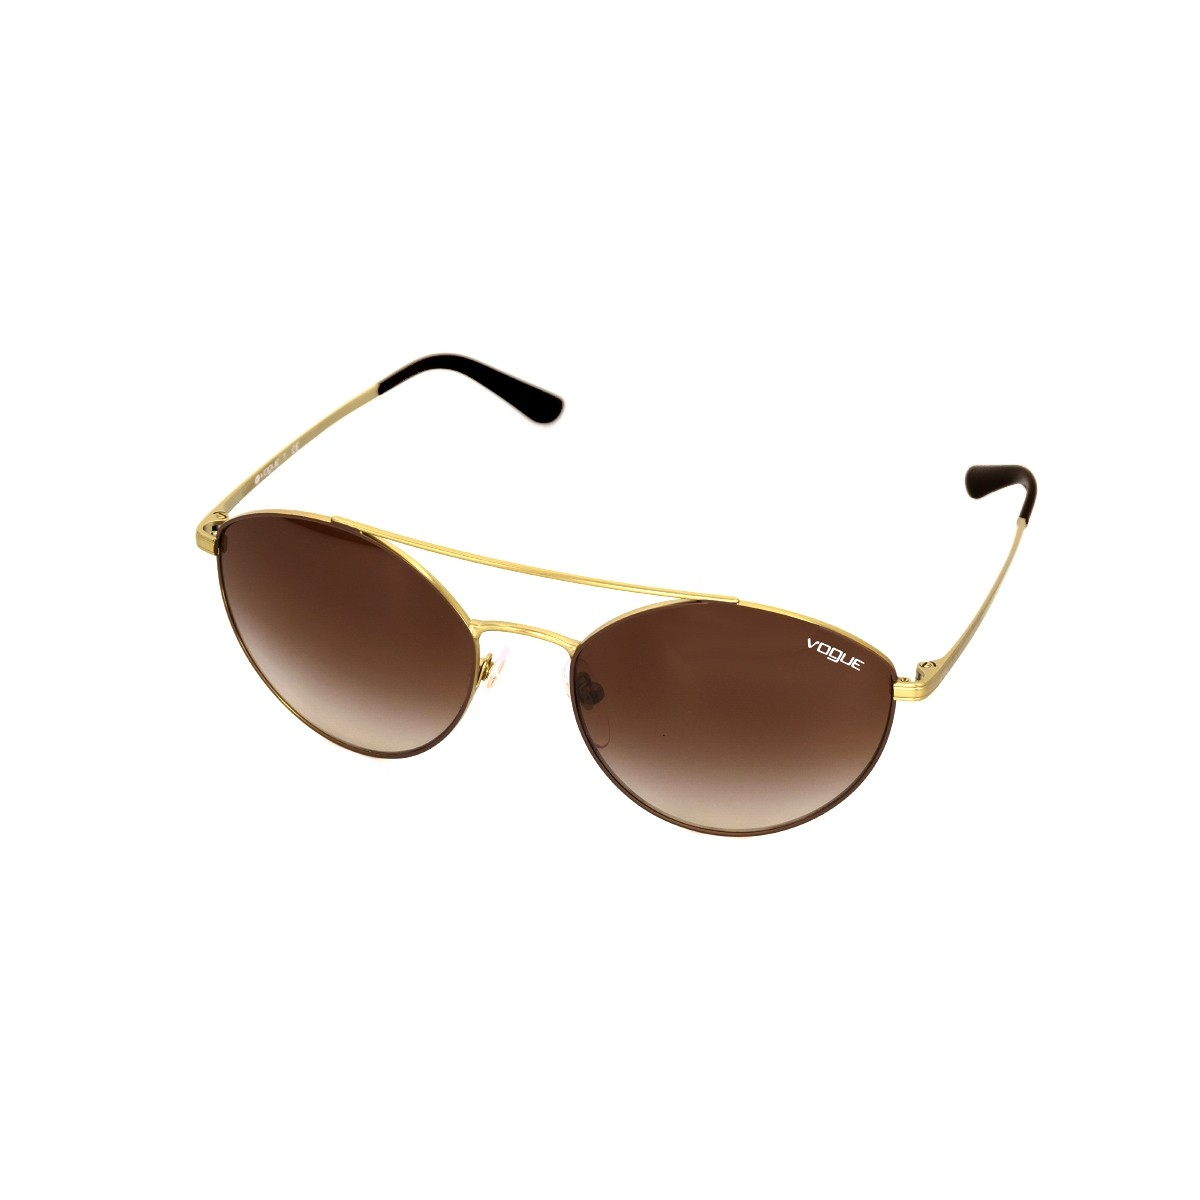 Vogue 4023 marrone satinato / oro opaco, 64,00 €, Occhiali Vogue Marrone a forma Farfalla